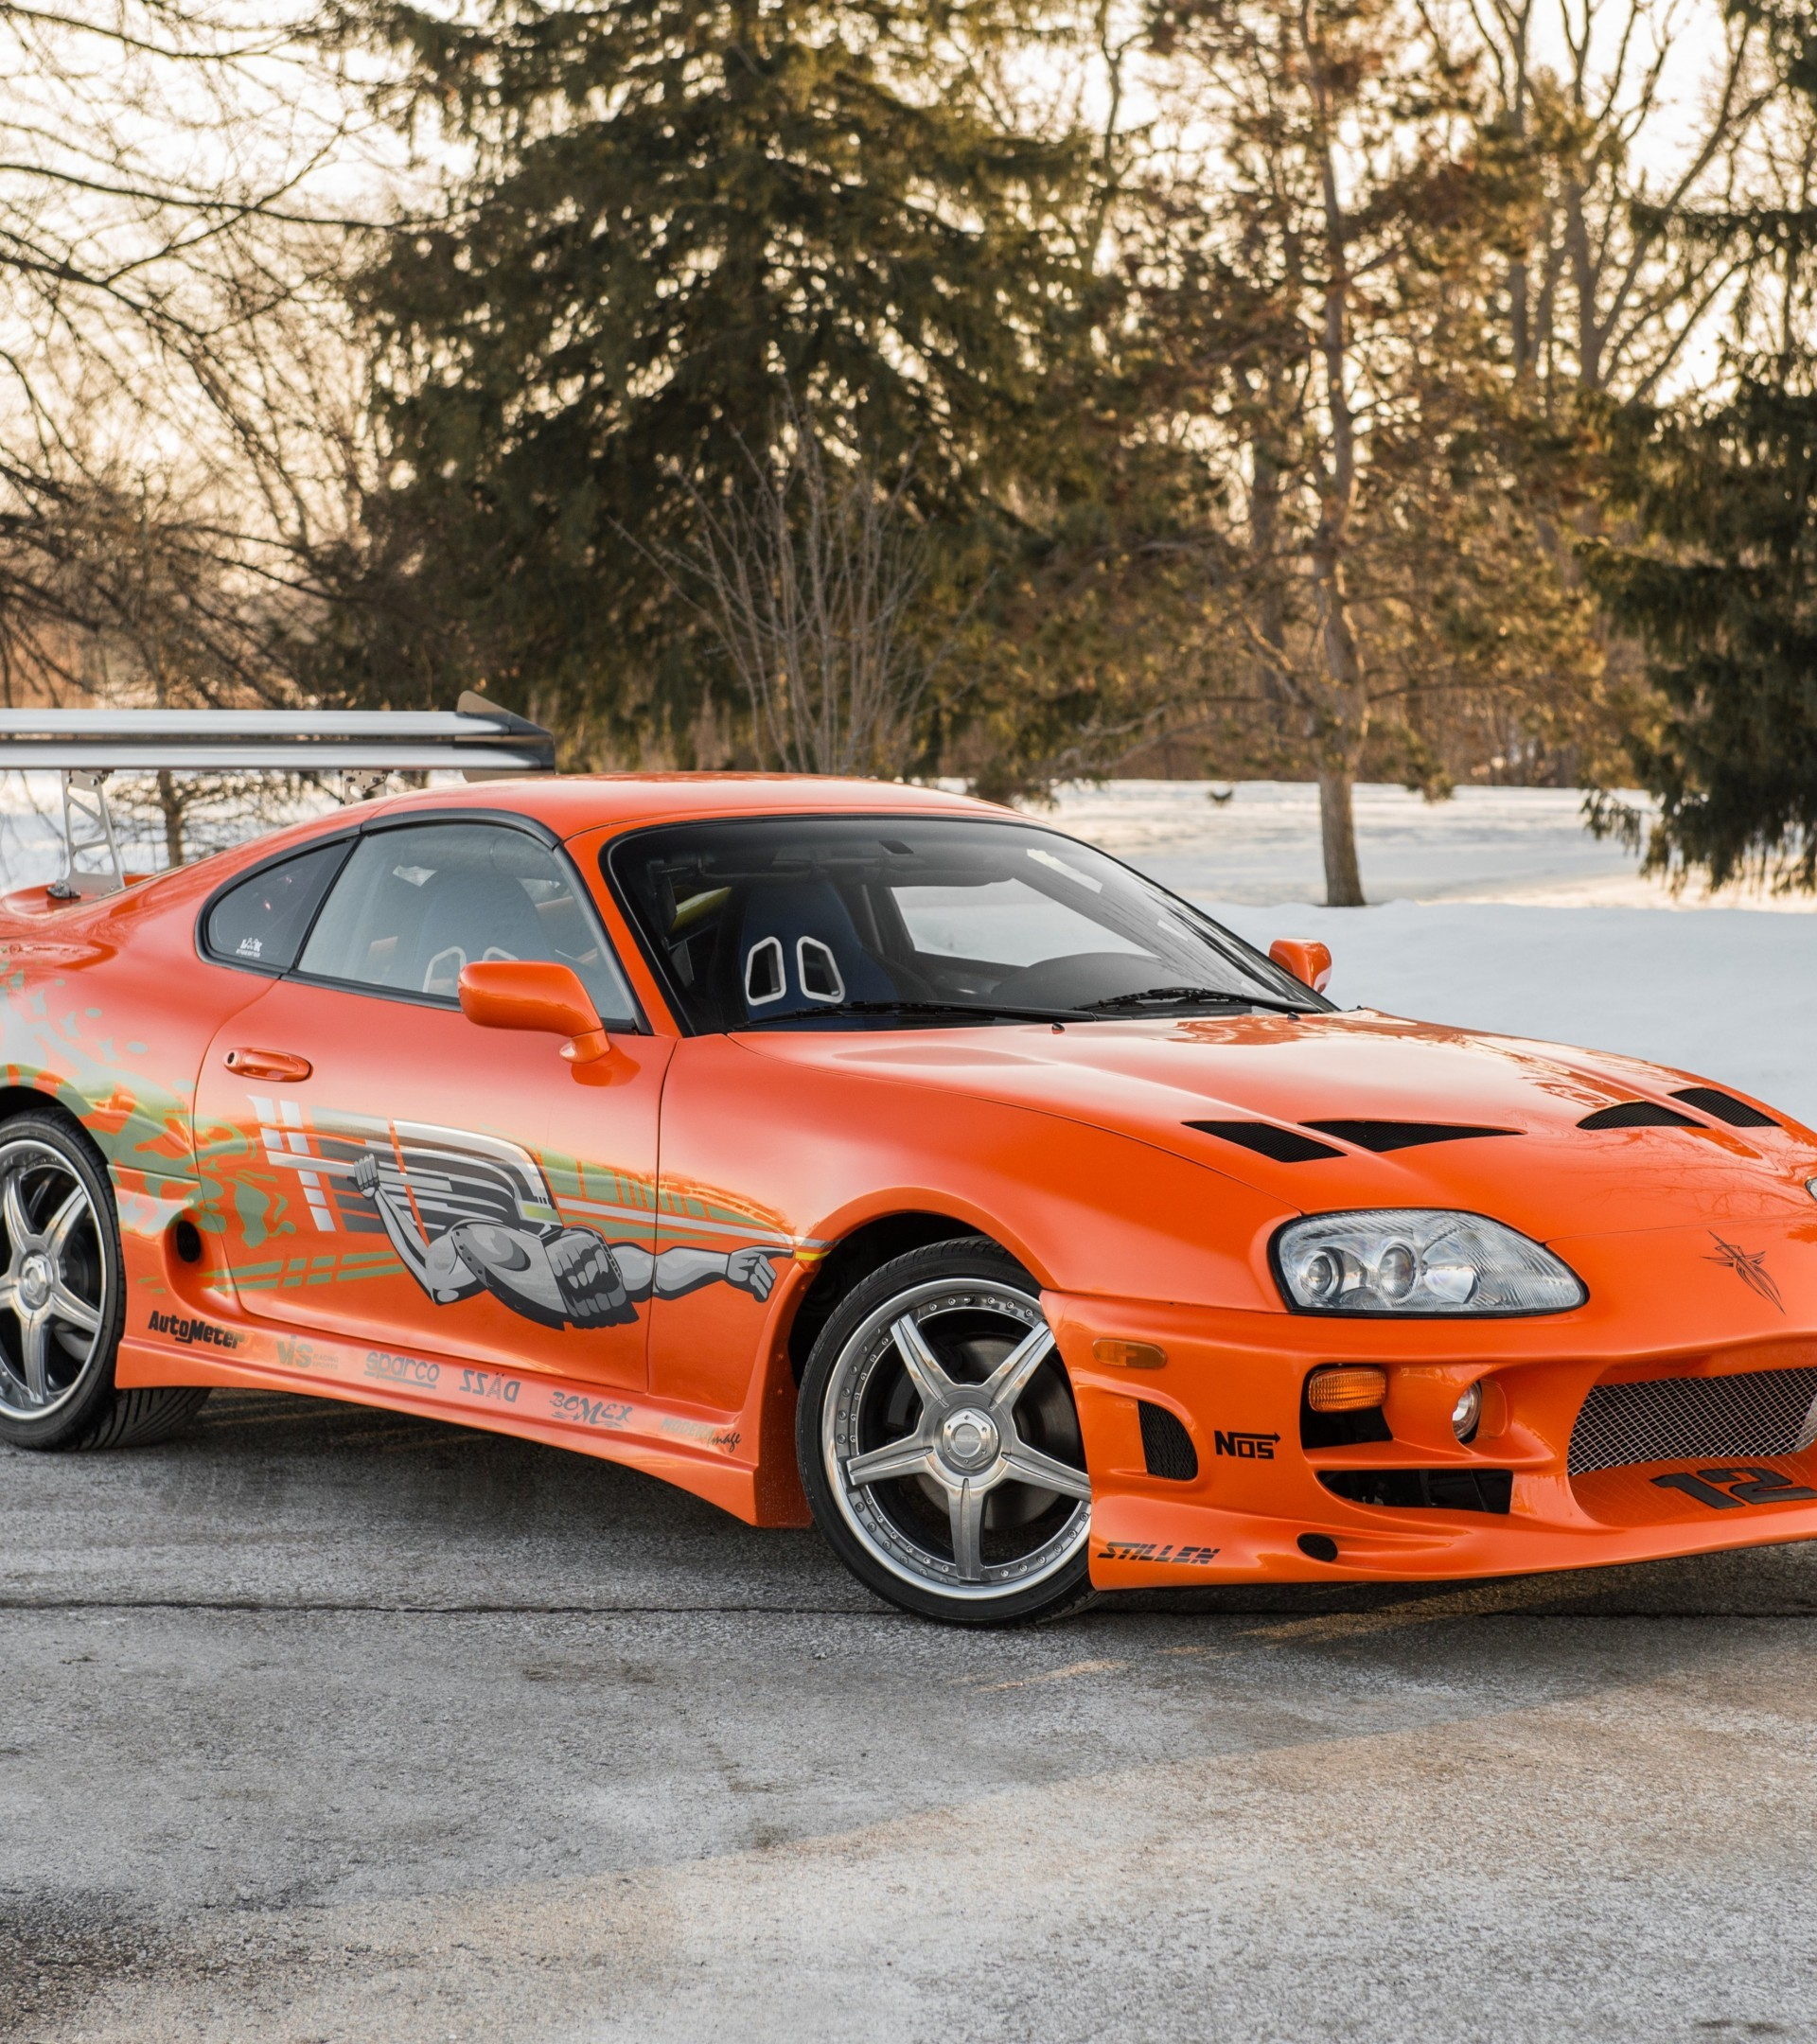 Toyota Car Wallpaper: The Fast And The Furious Wallpapers (68+ Images